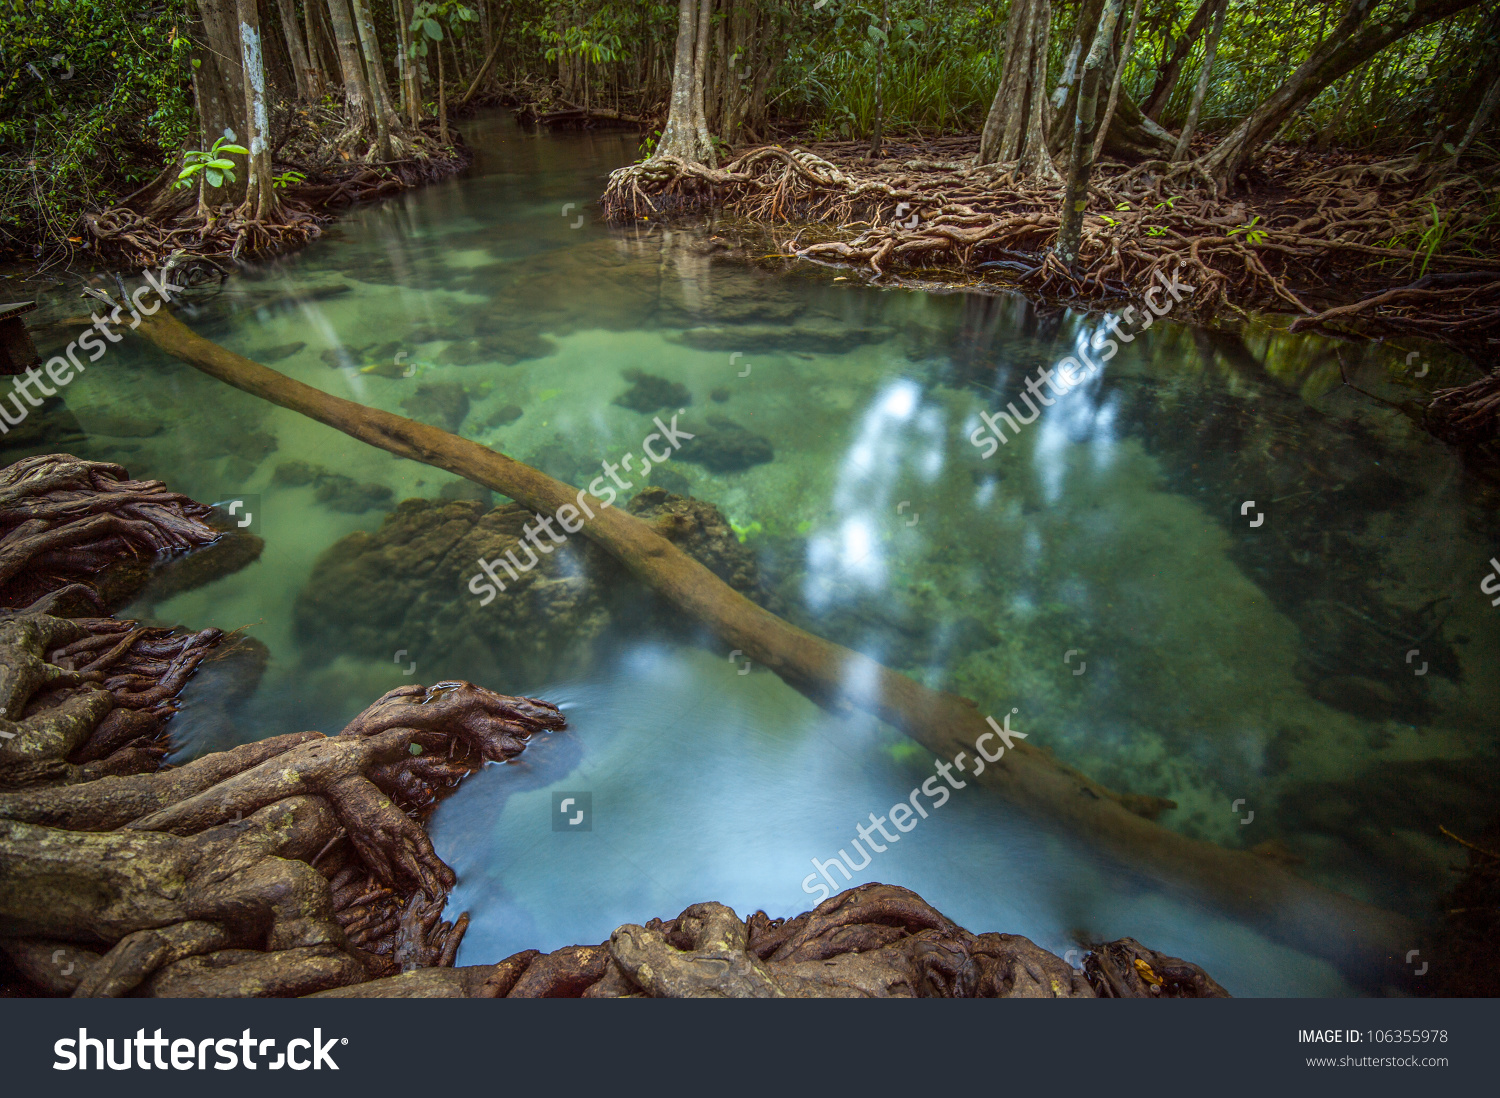 Mangrove Forests With Pond Stock Photo 106355978 : Shutterstock.